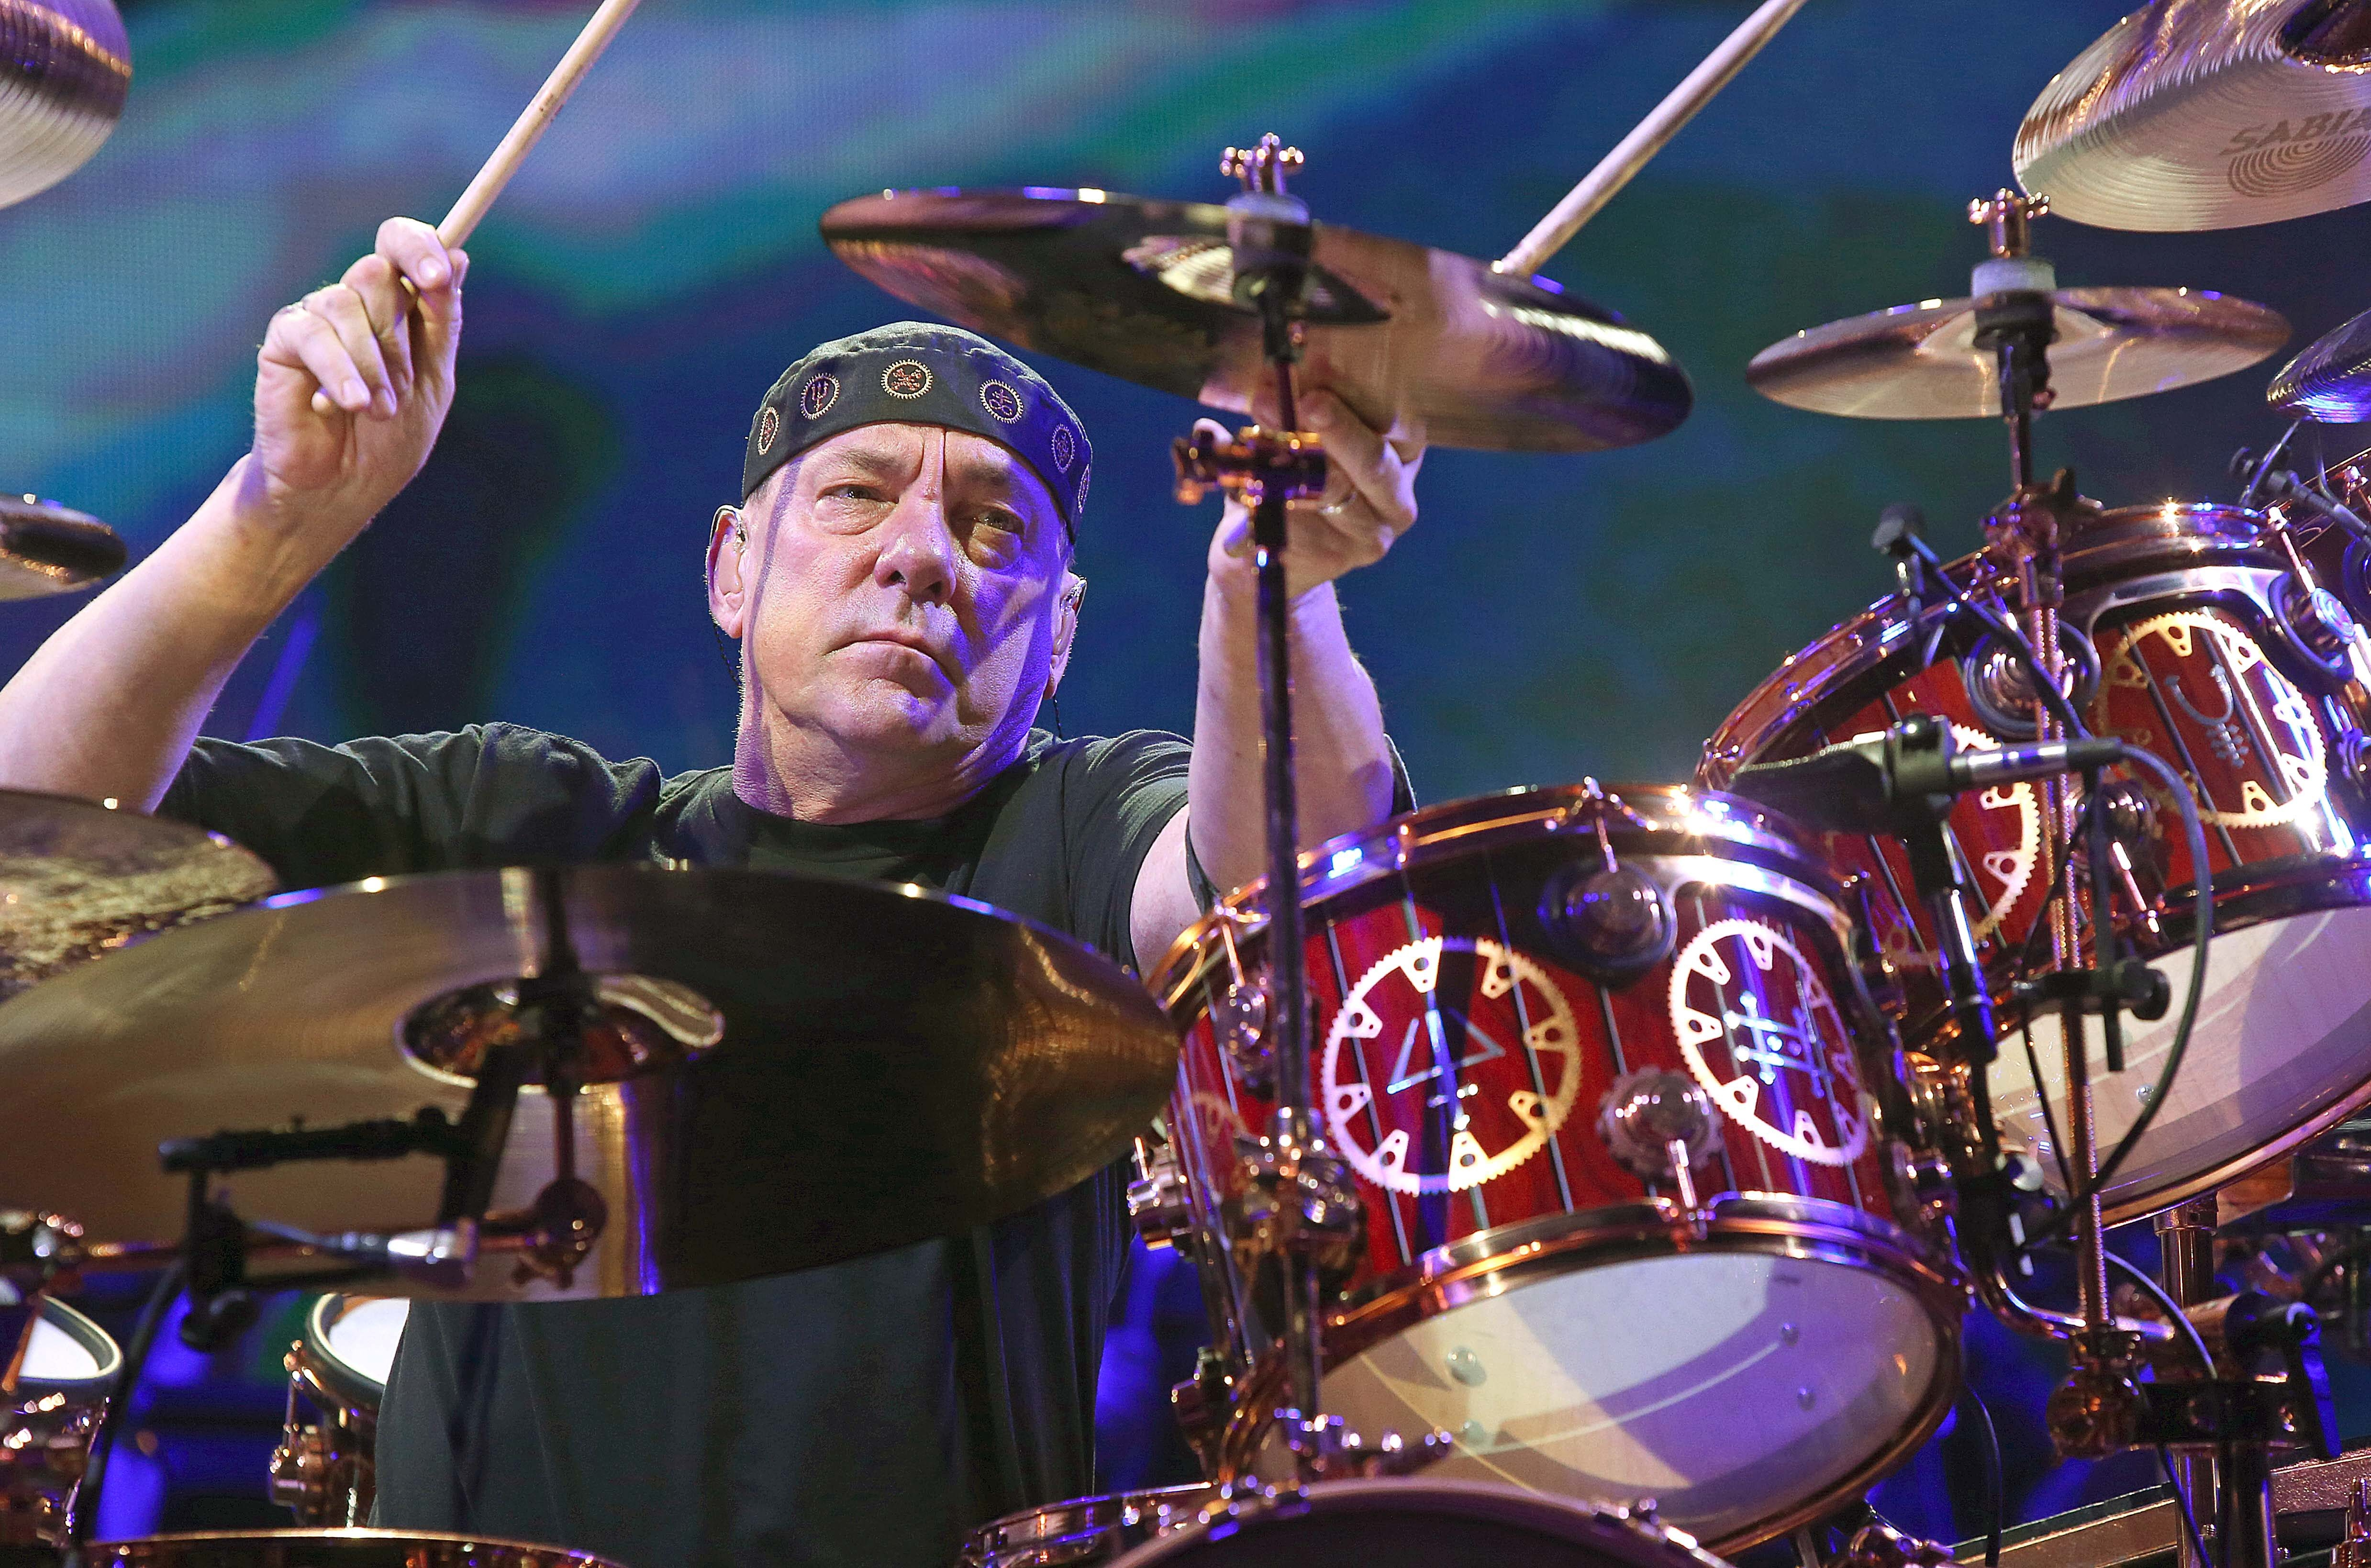 Drummer Neil Peart performs with Rush at First Niagara Center in October 2012.